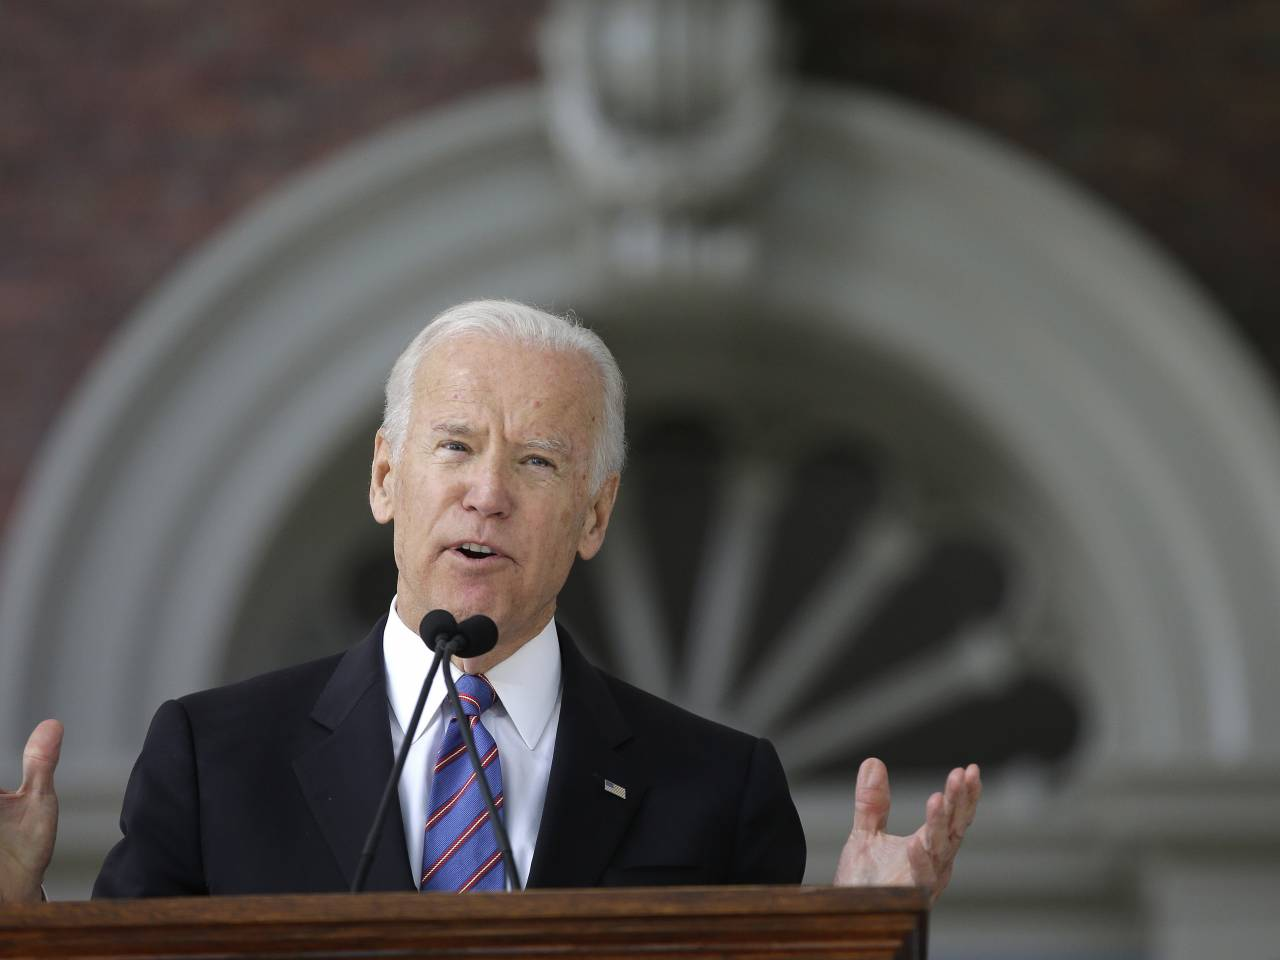 Biden critical of Trump policies during Cornell speech